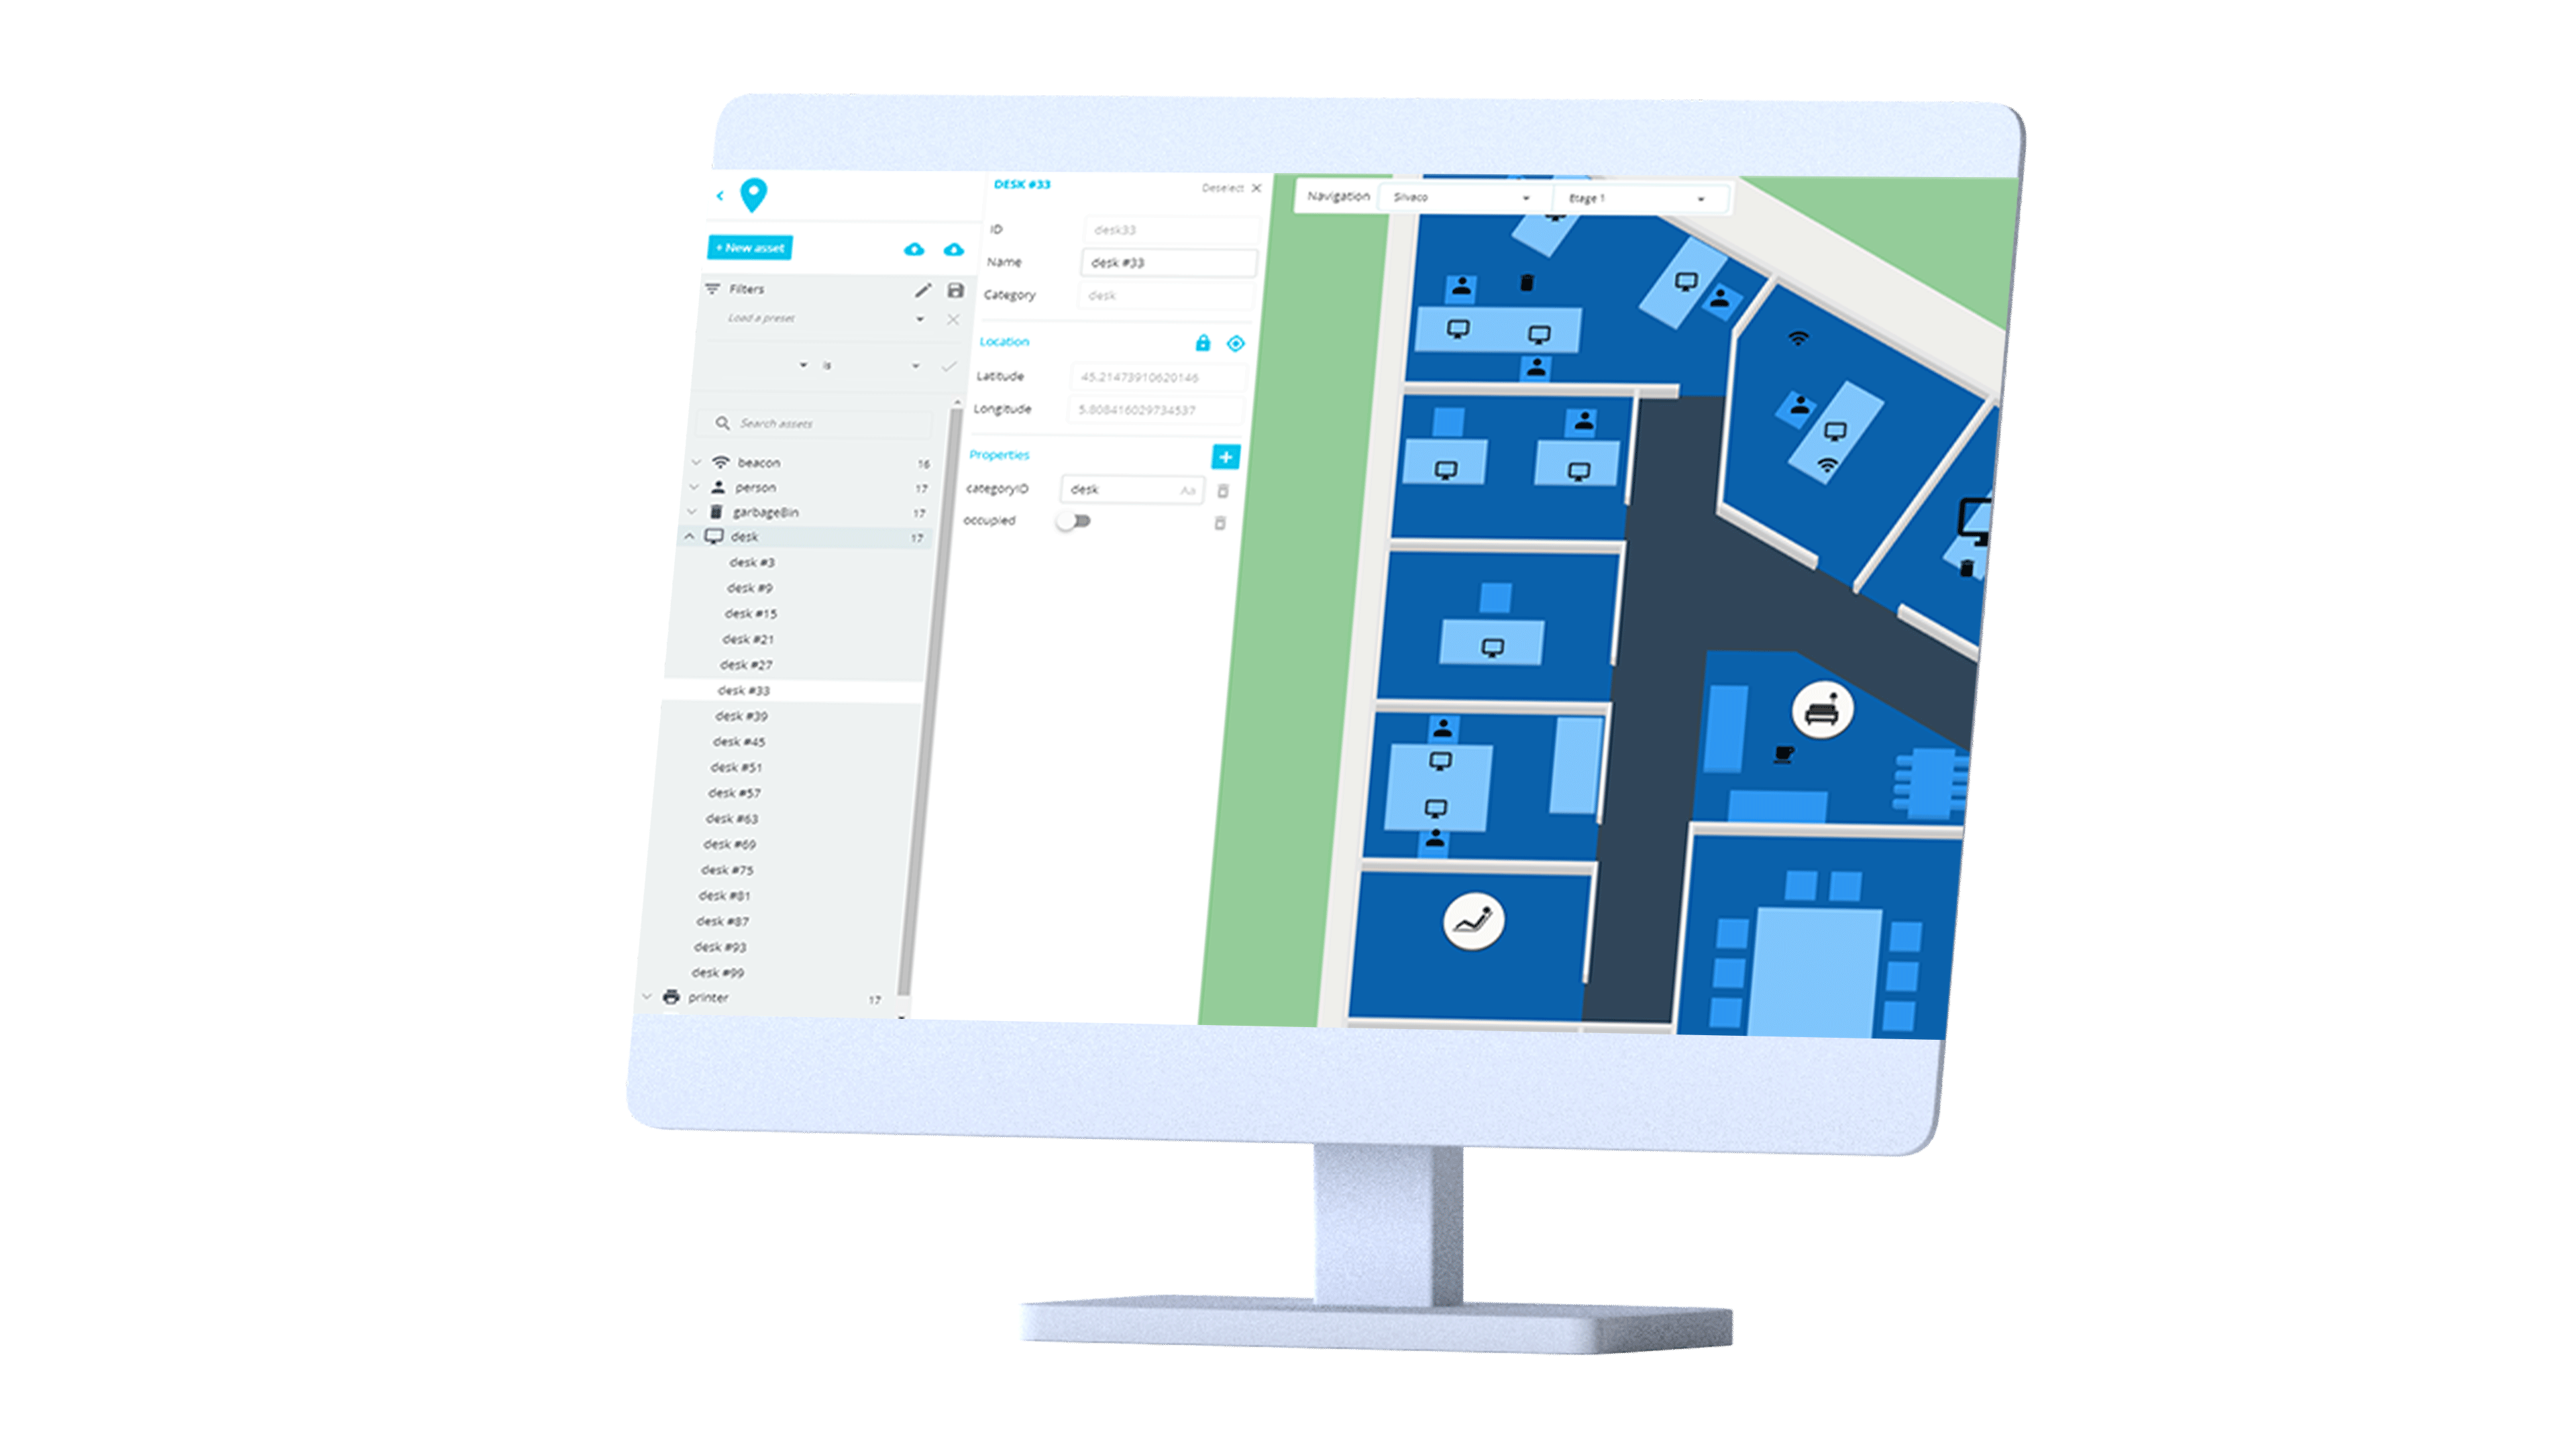 Track and locate your assets with VisioAssets